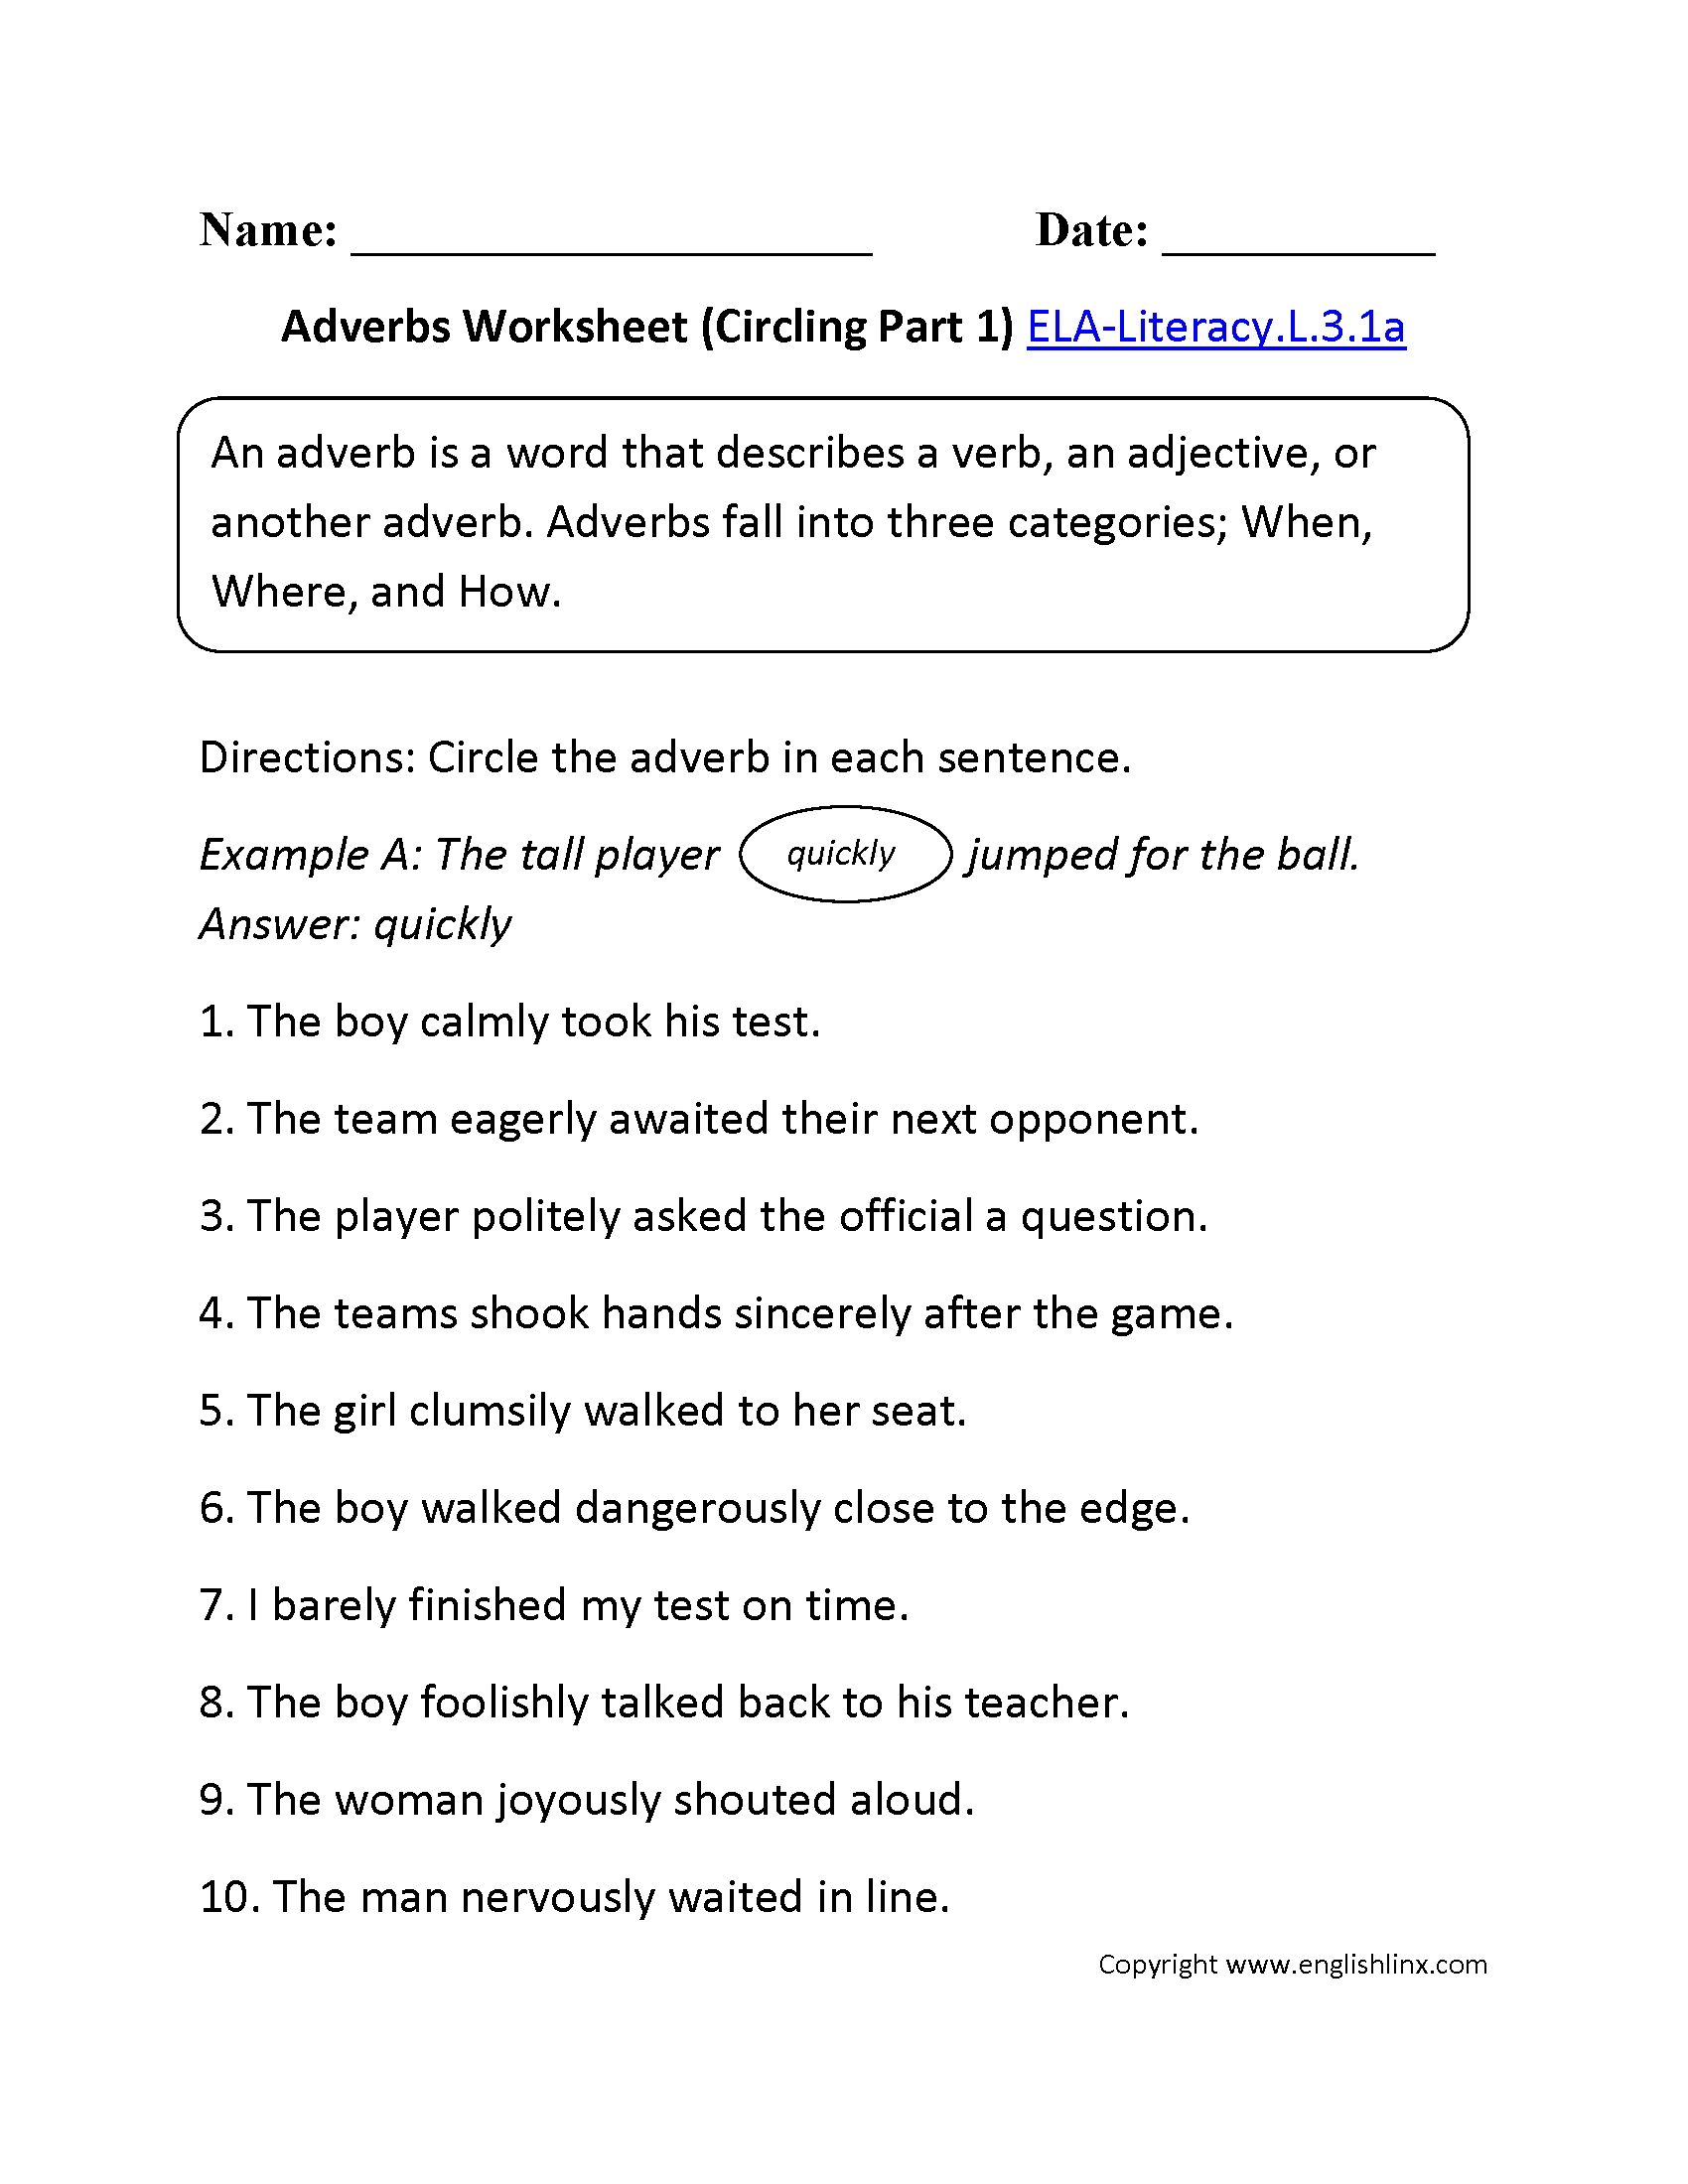 adverb worksheets for 3rd grade Worksheet | Education.com.